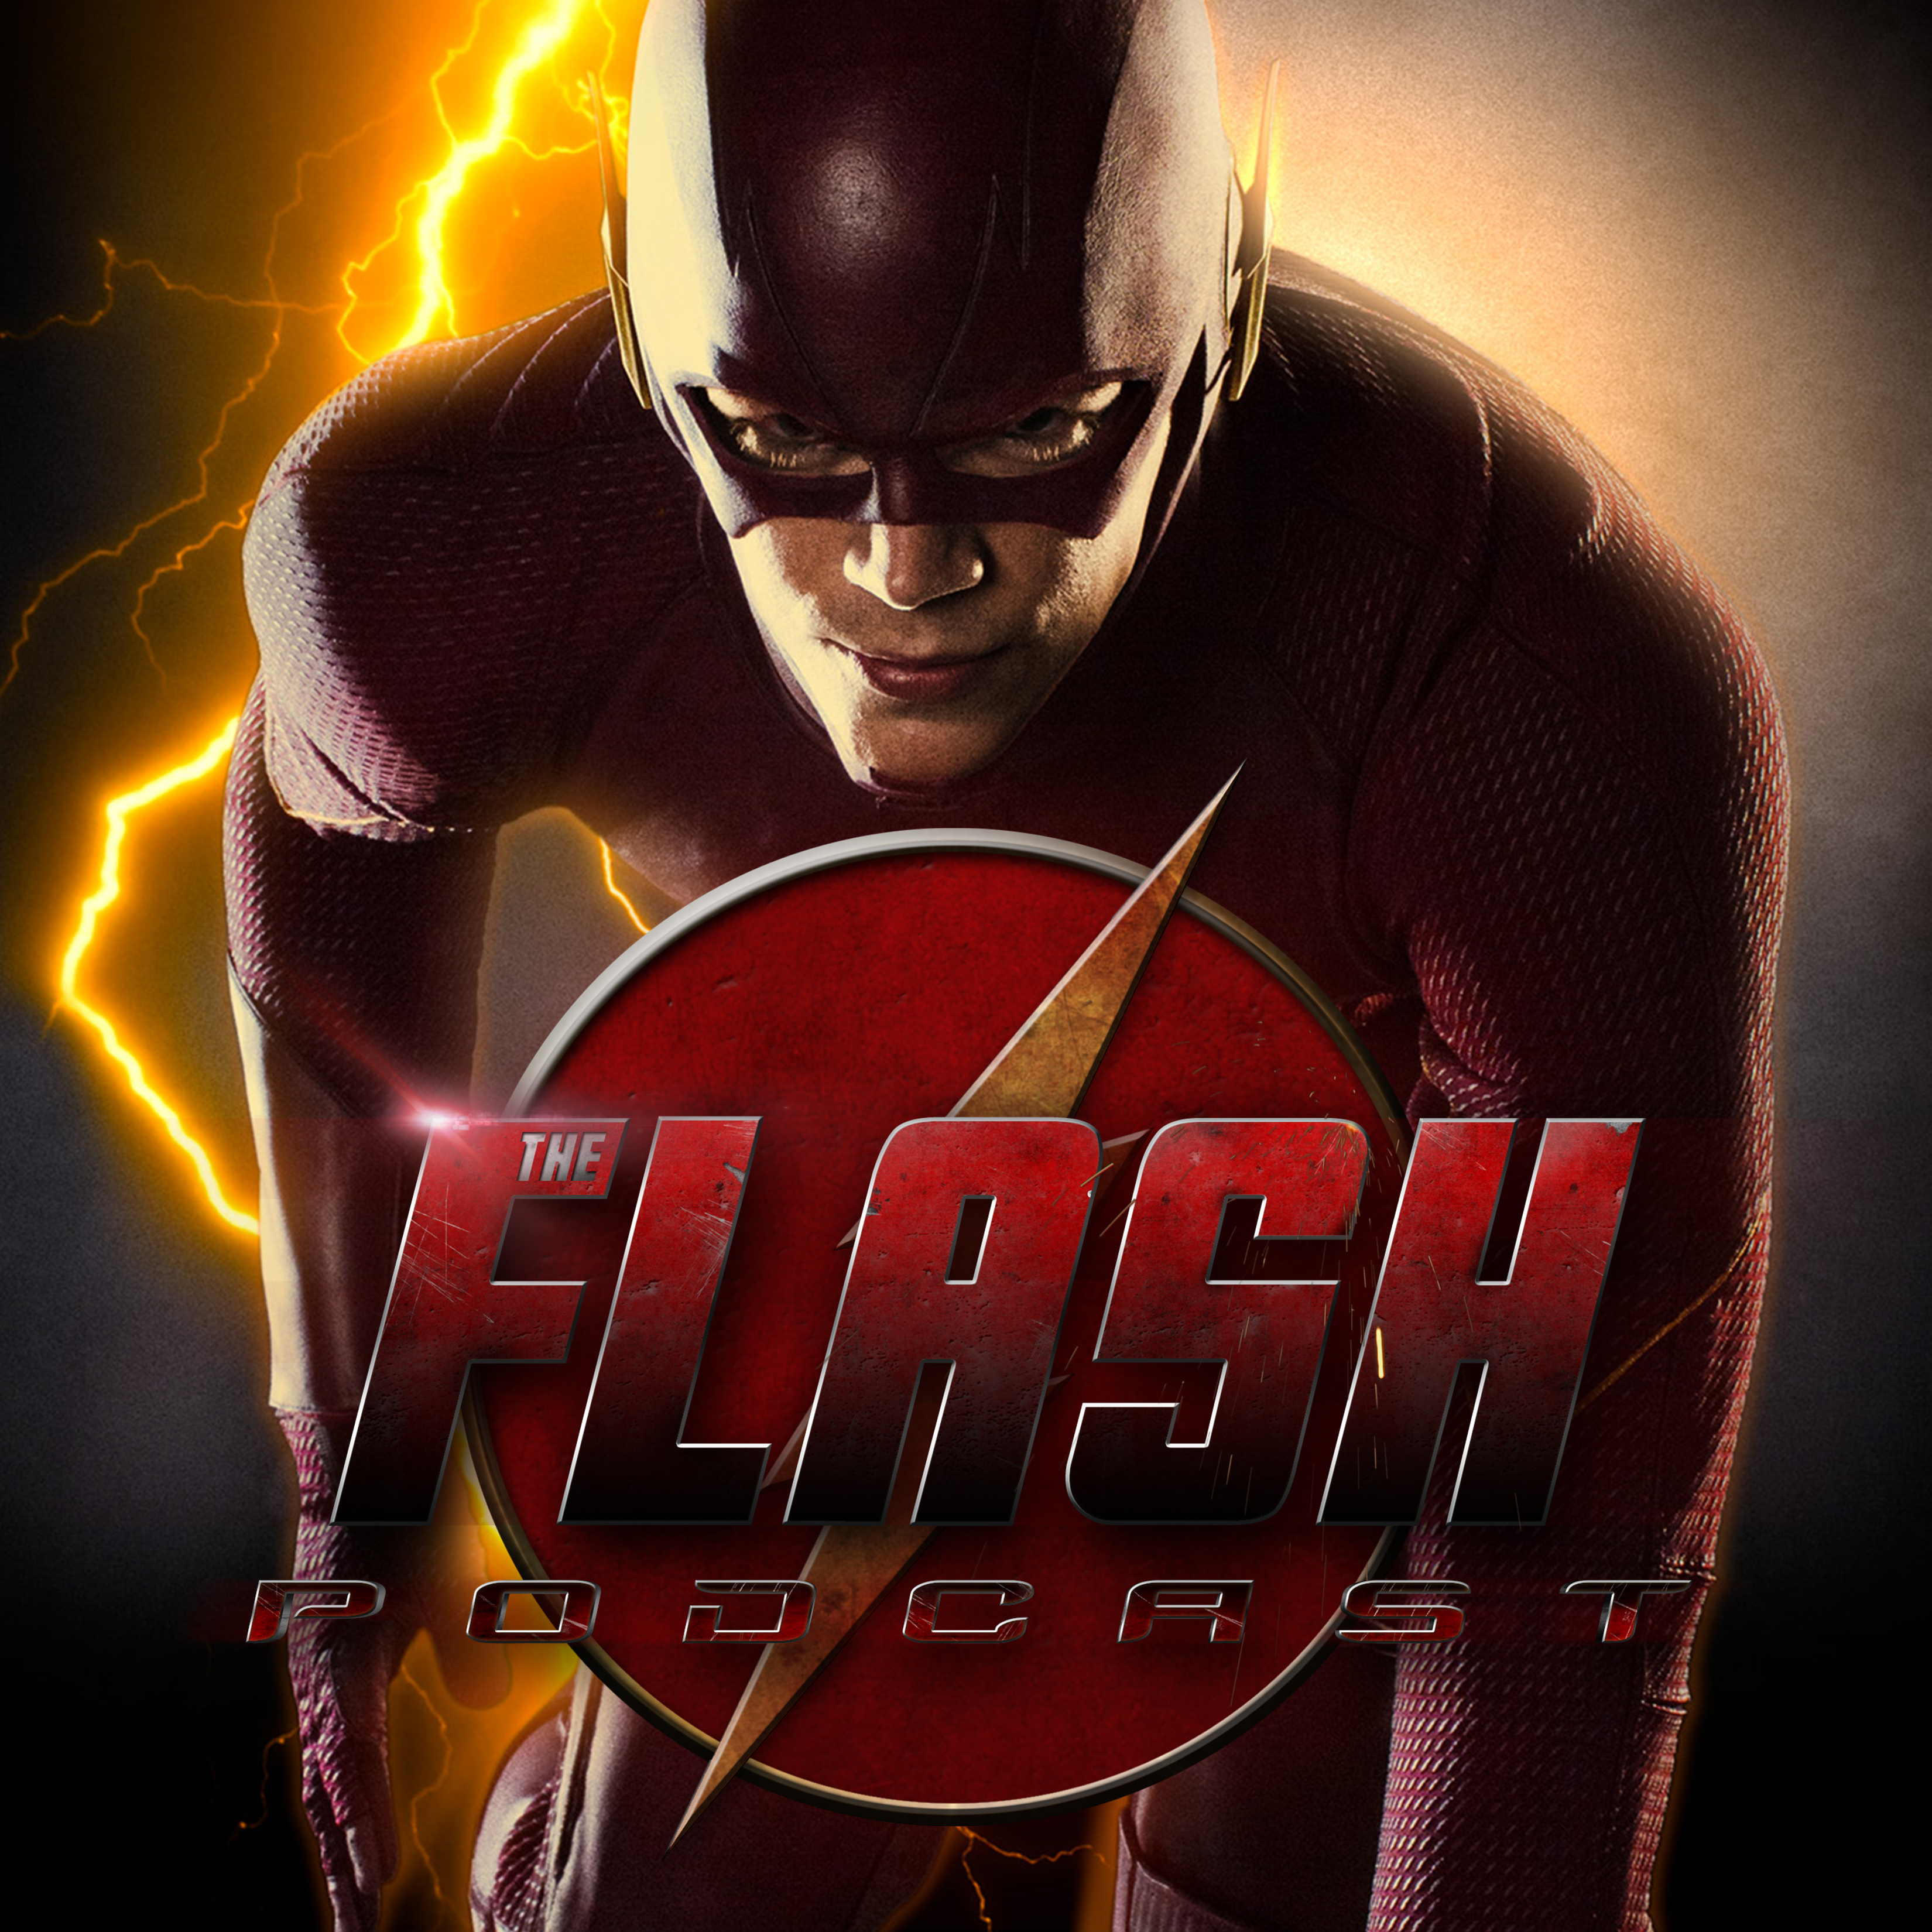 THE FLASH at PaleyFest 2015 | Tom Cavanagh Discusses the Evolution of Harrison Wells and Reverse-Flash | The Flash Podcast